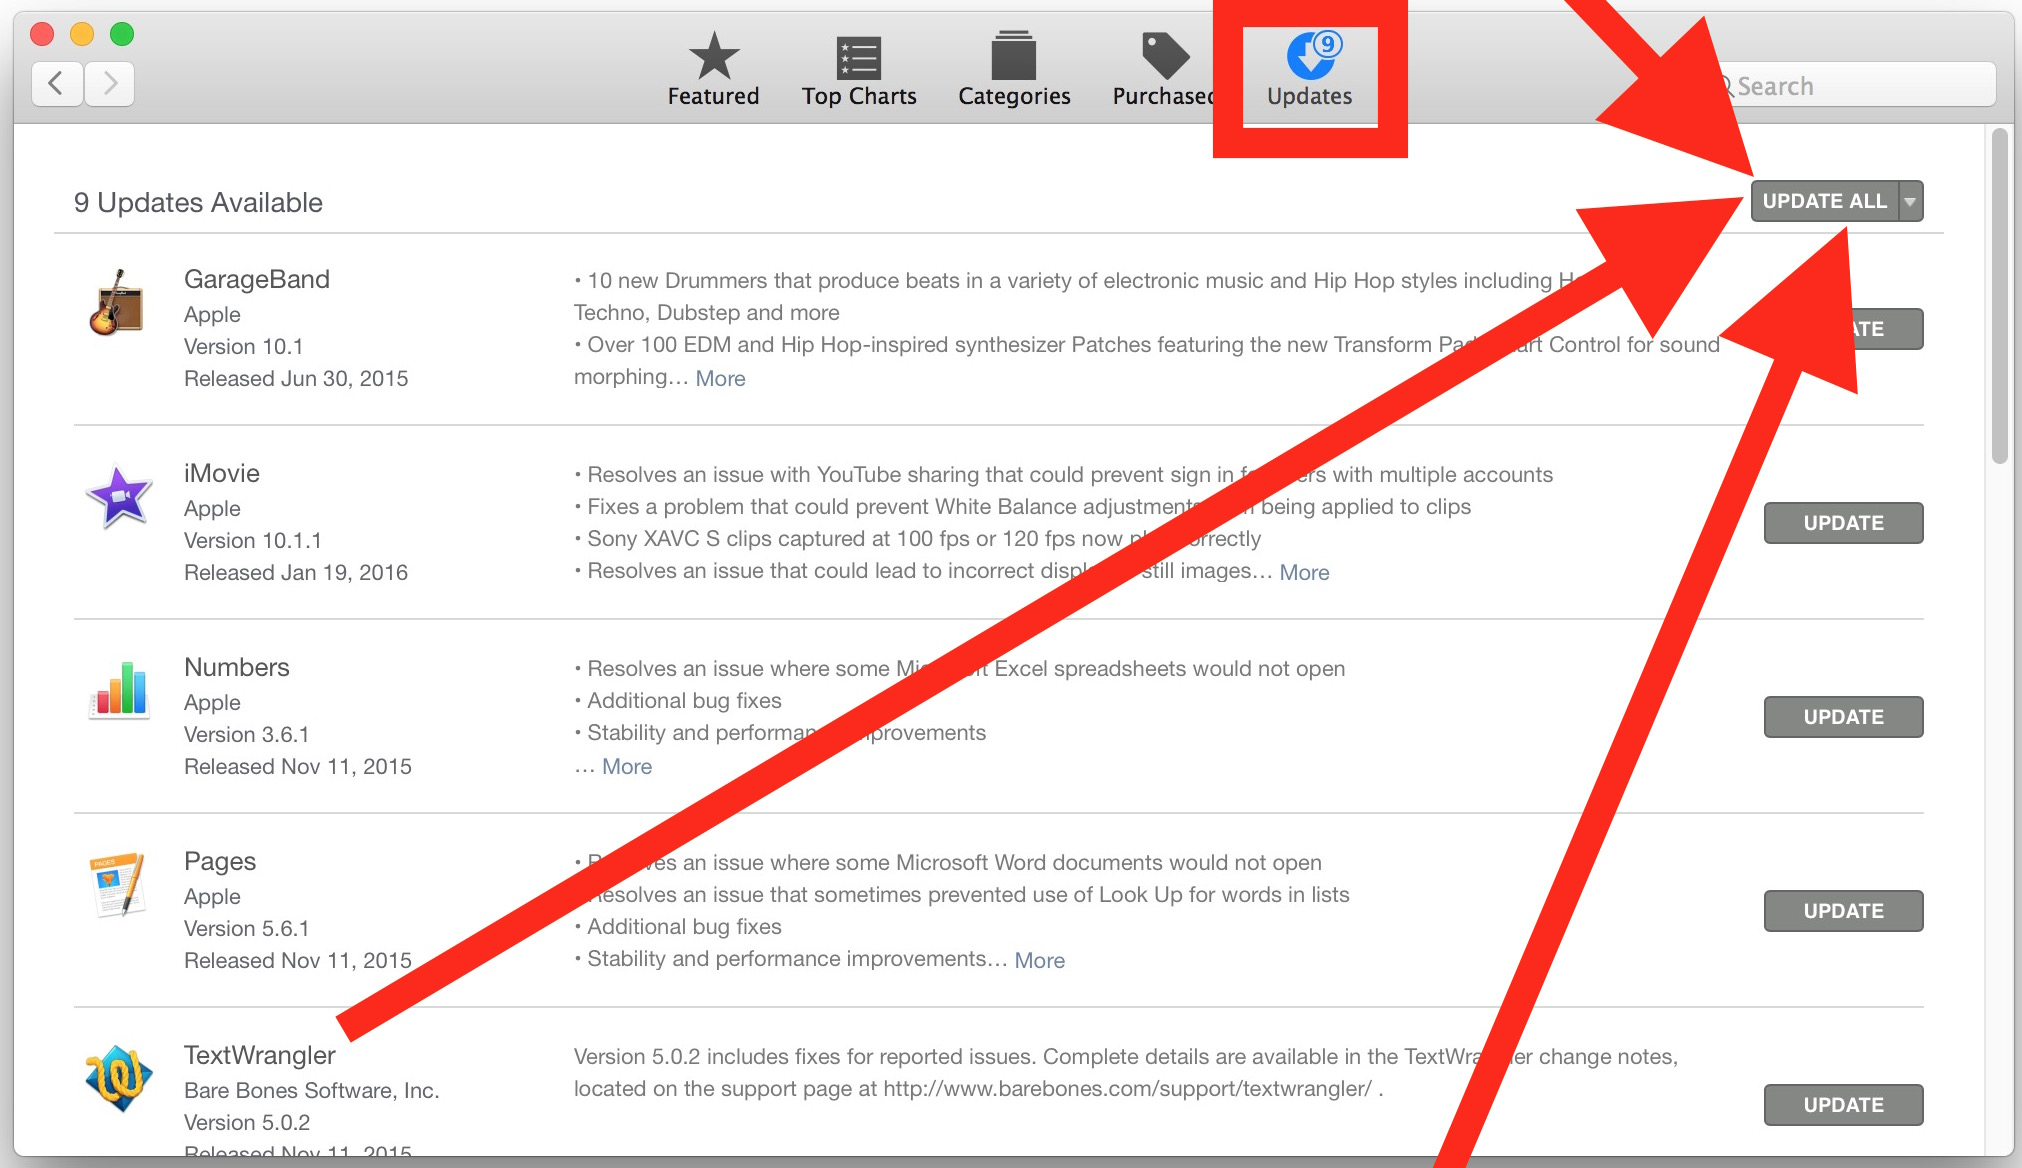 Update Mac App Store apps to fix them from crashing on launch